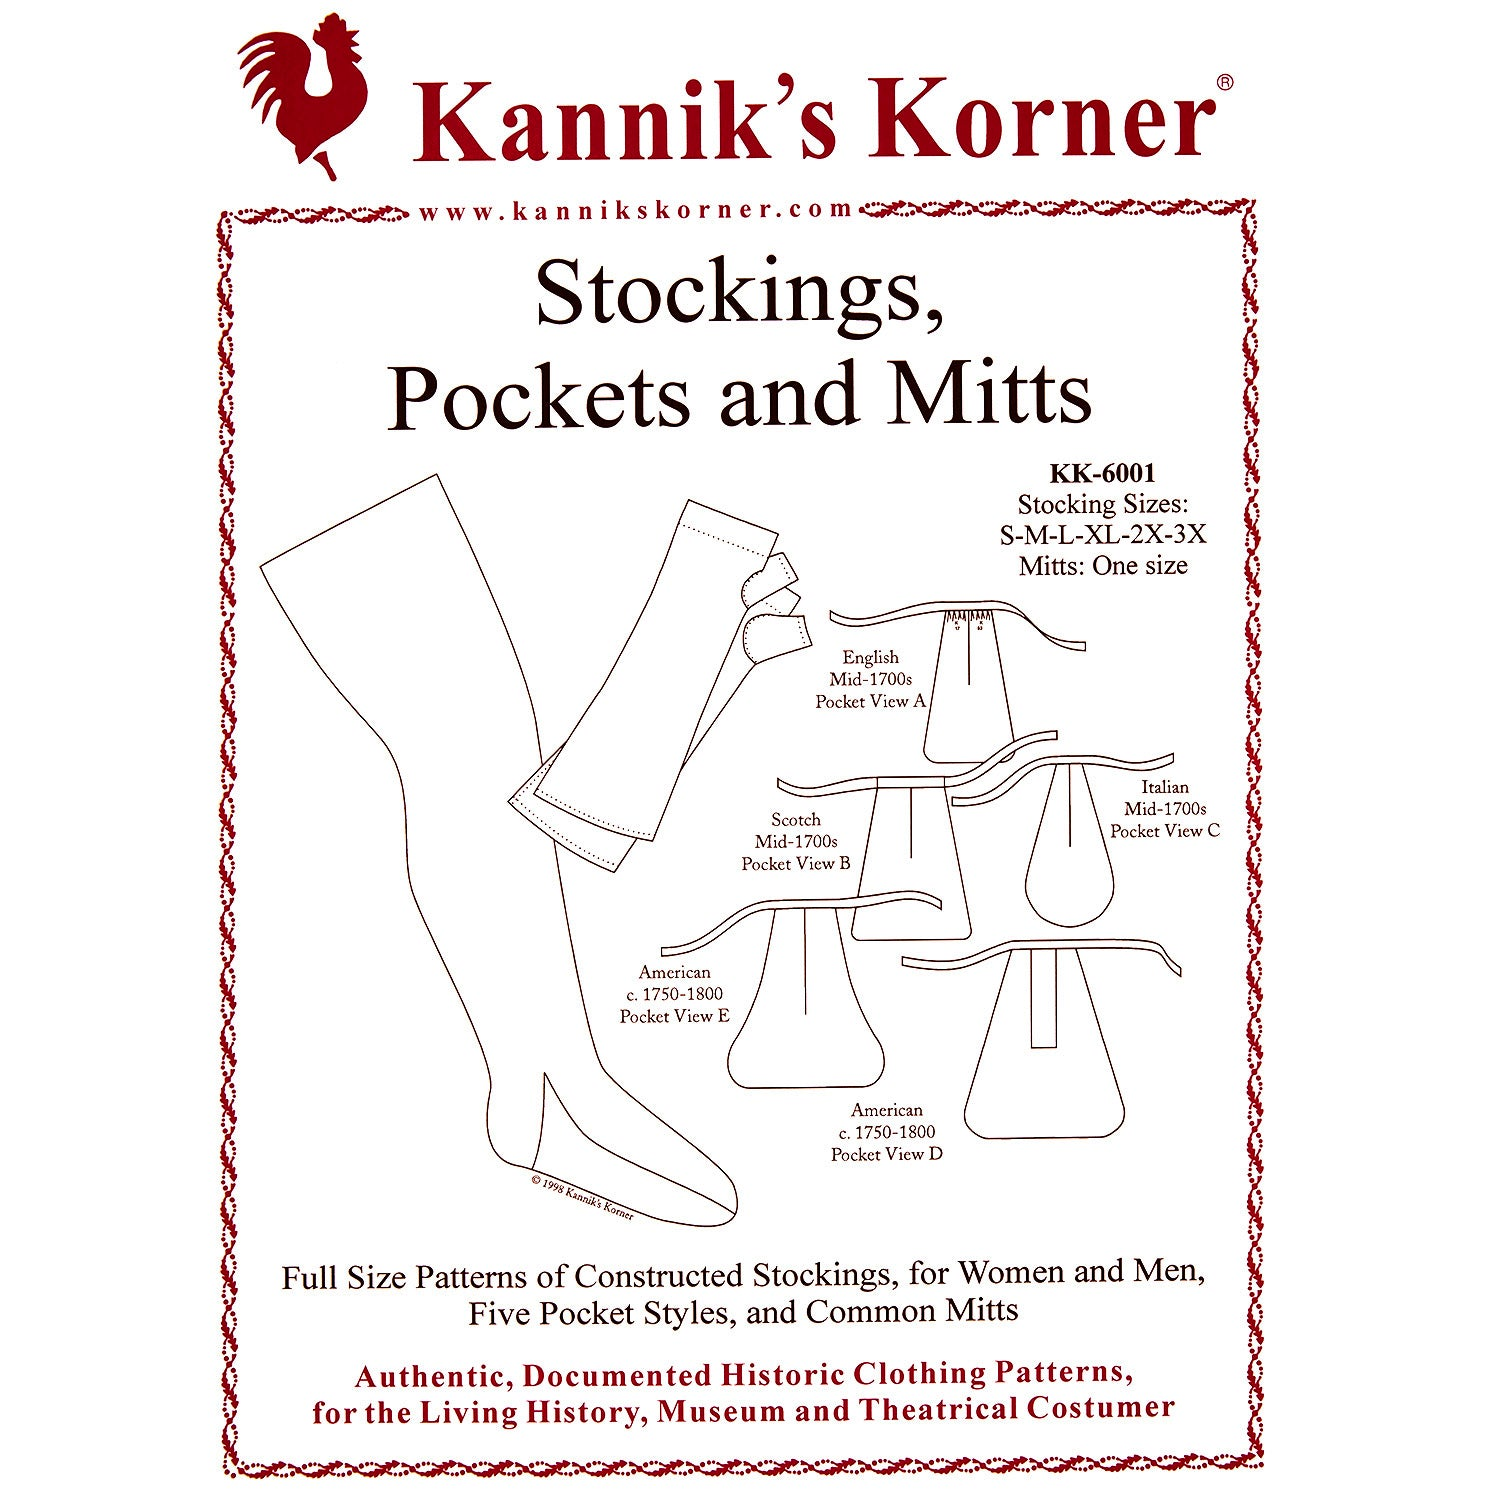 Kanniks Korner Stockings, Pockets, and Mitts Pattern